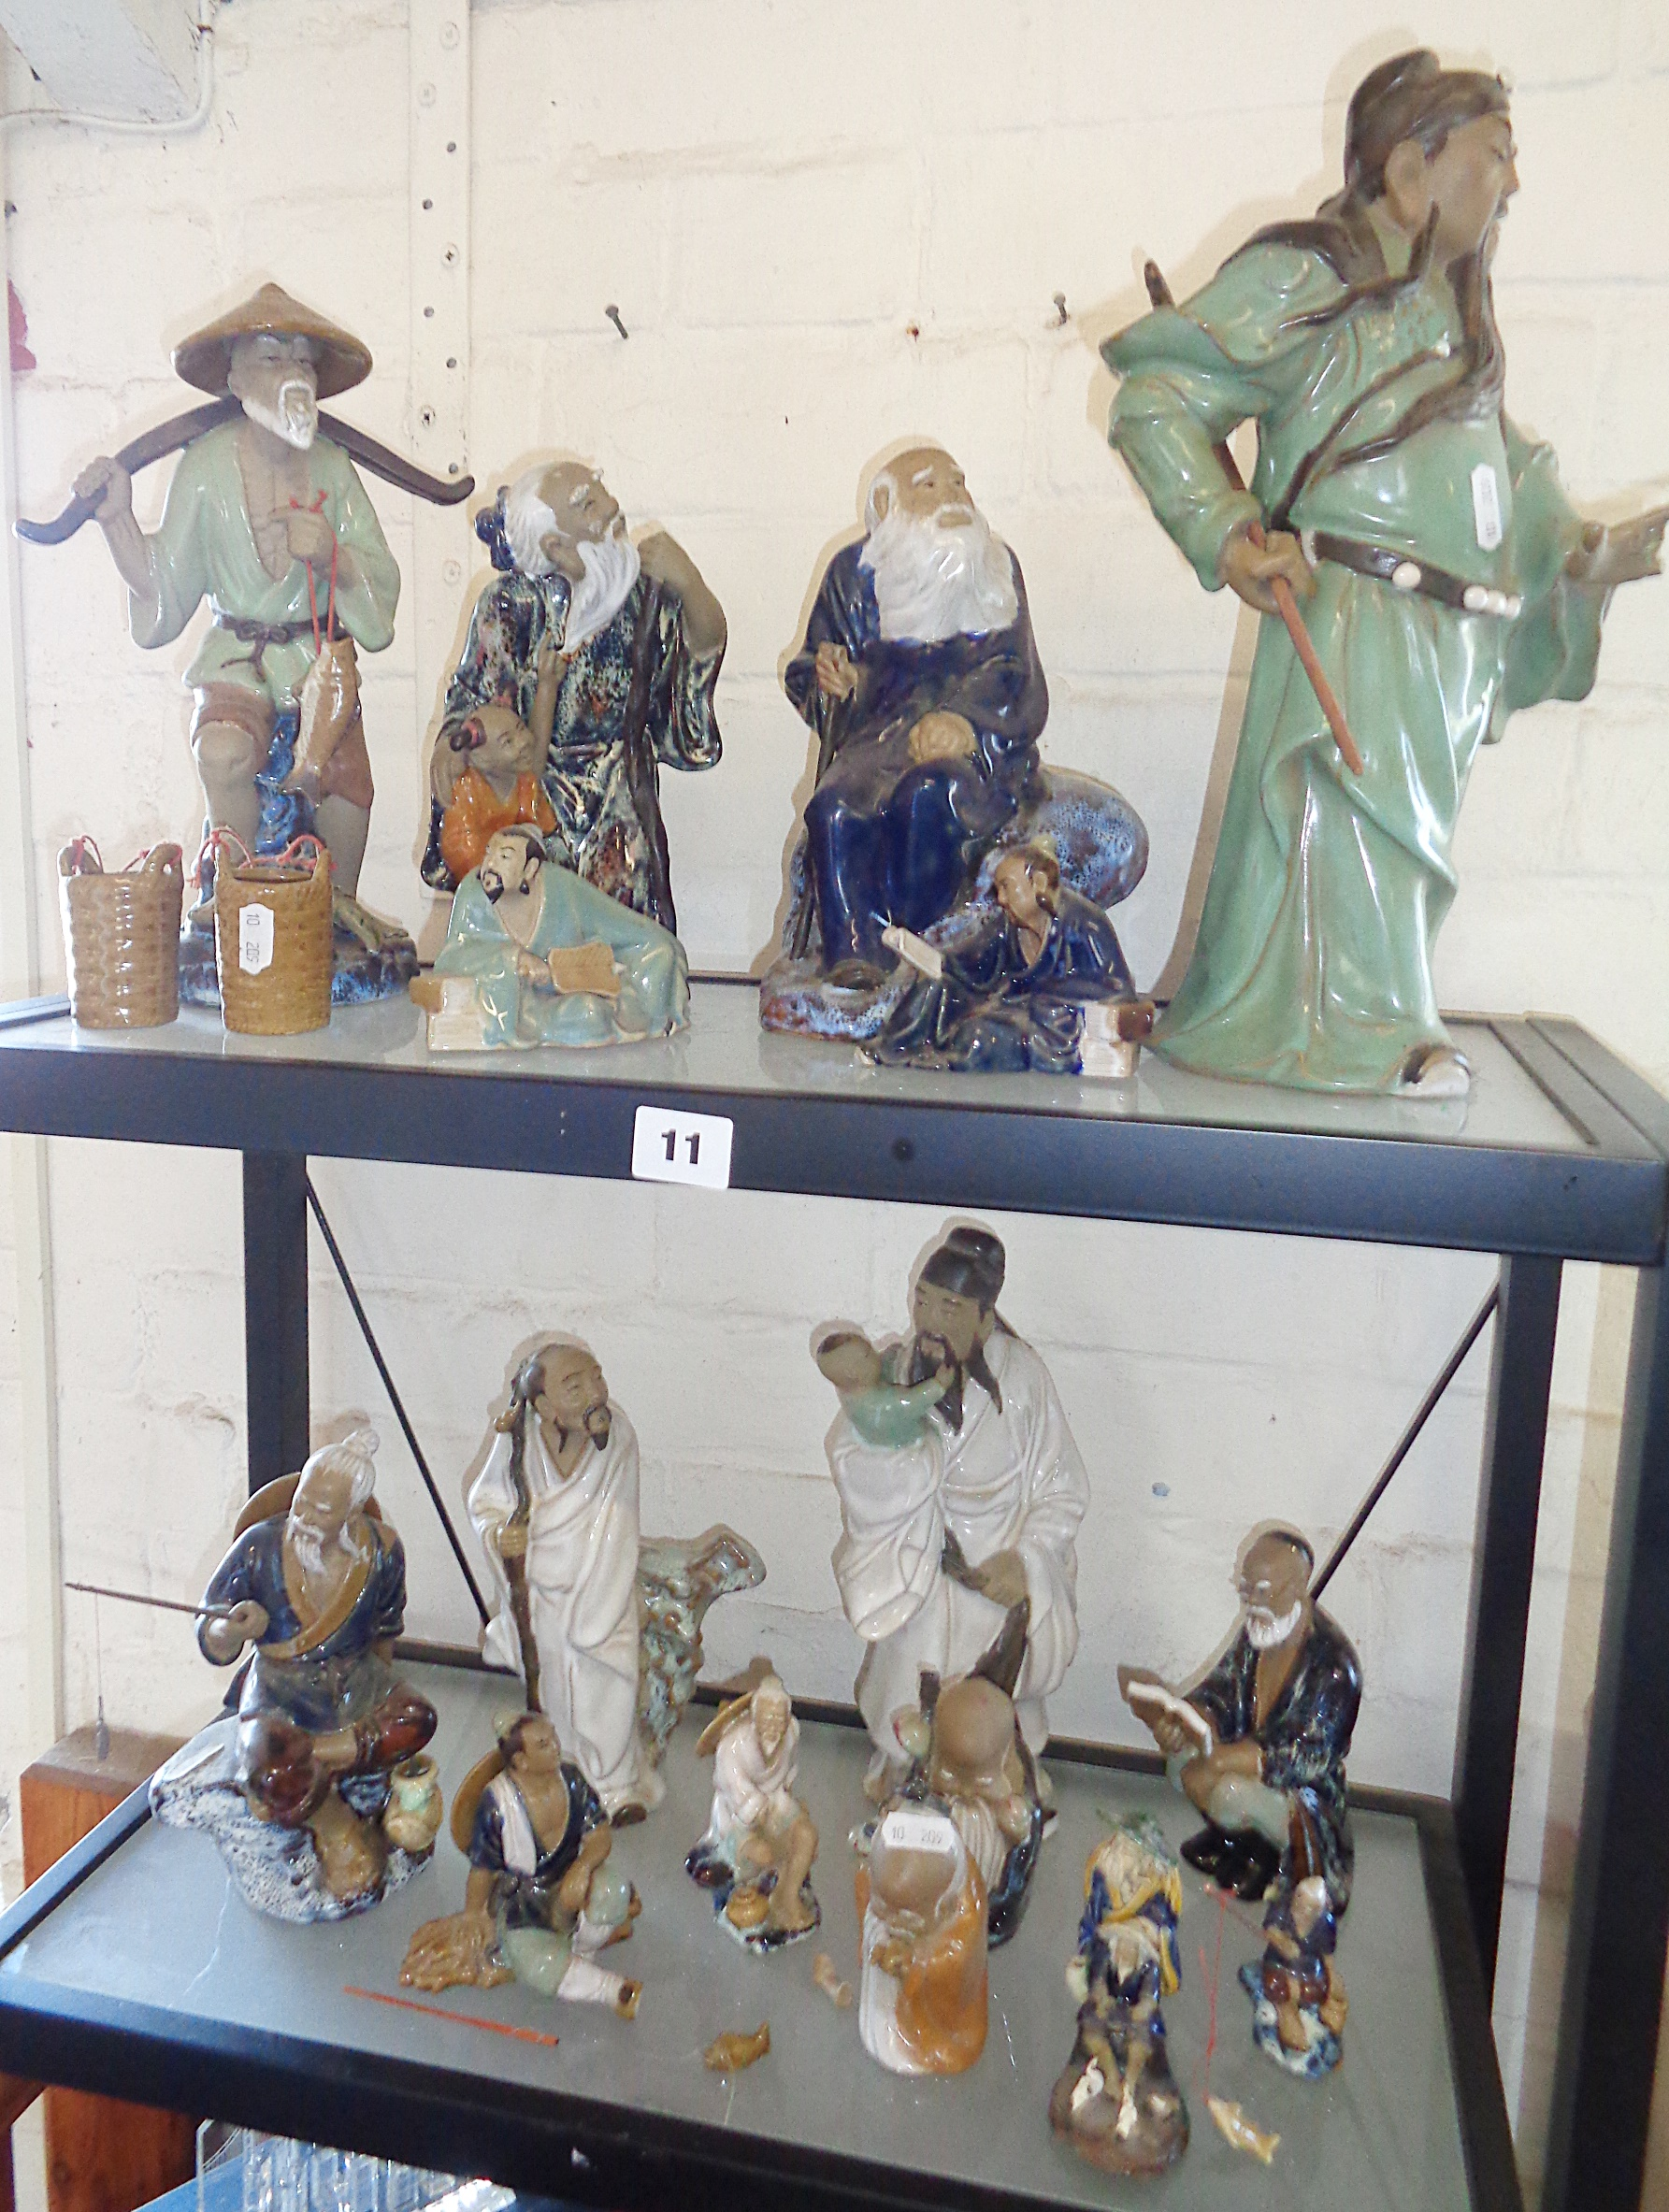 """Lot 11 - Collection of Japanese glazed pottery """"Mud-men"""" figures of peasants and scholars"""